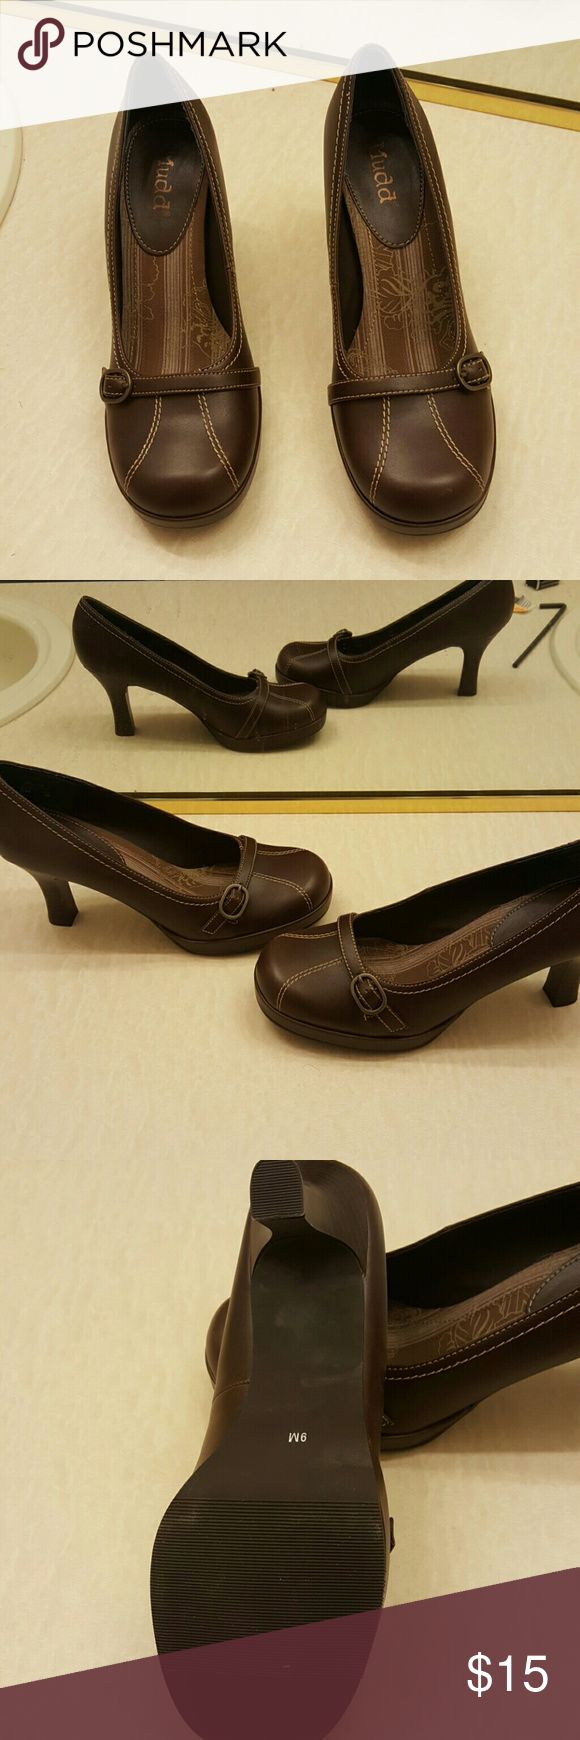 Mudd holly dark brown shoes Never been worn shoes.  You will love them Mudd Shoes Heels